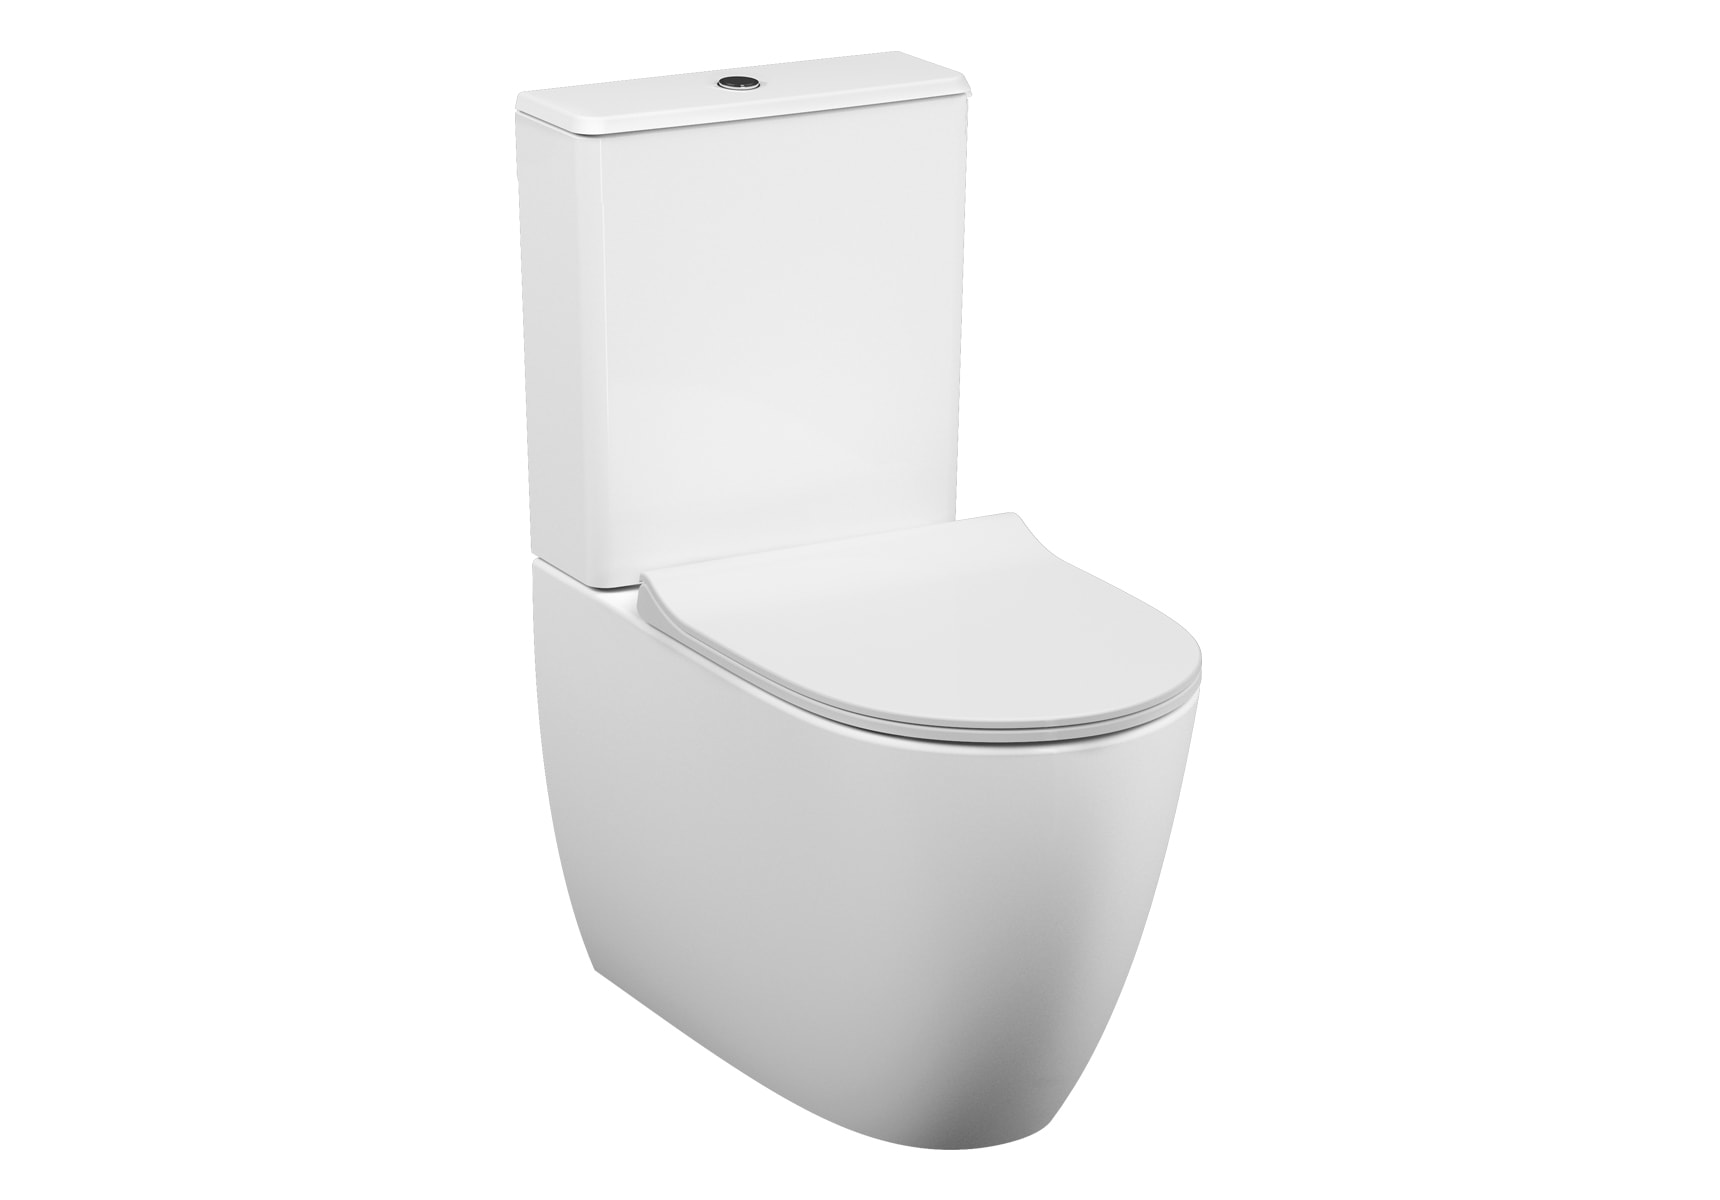 Sento Rim-ex Close-coupled WC Pan, back-to-wall, 65cm, universal outlet, water connection from side, white